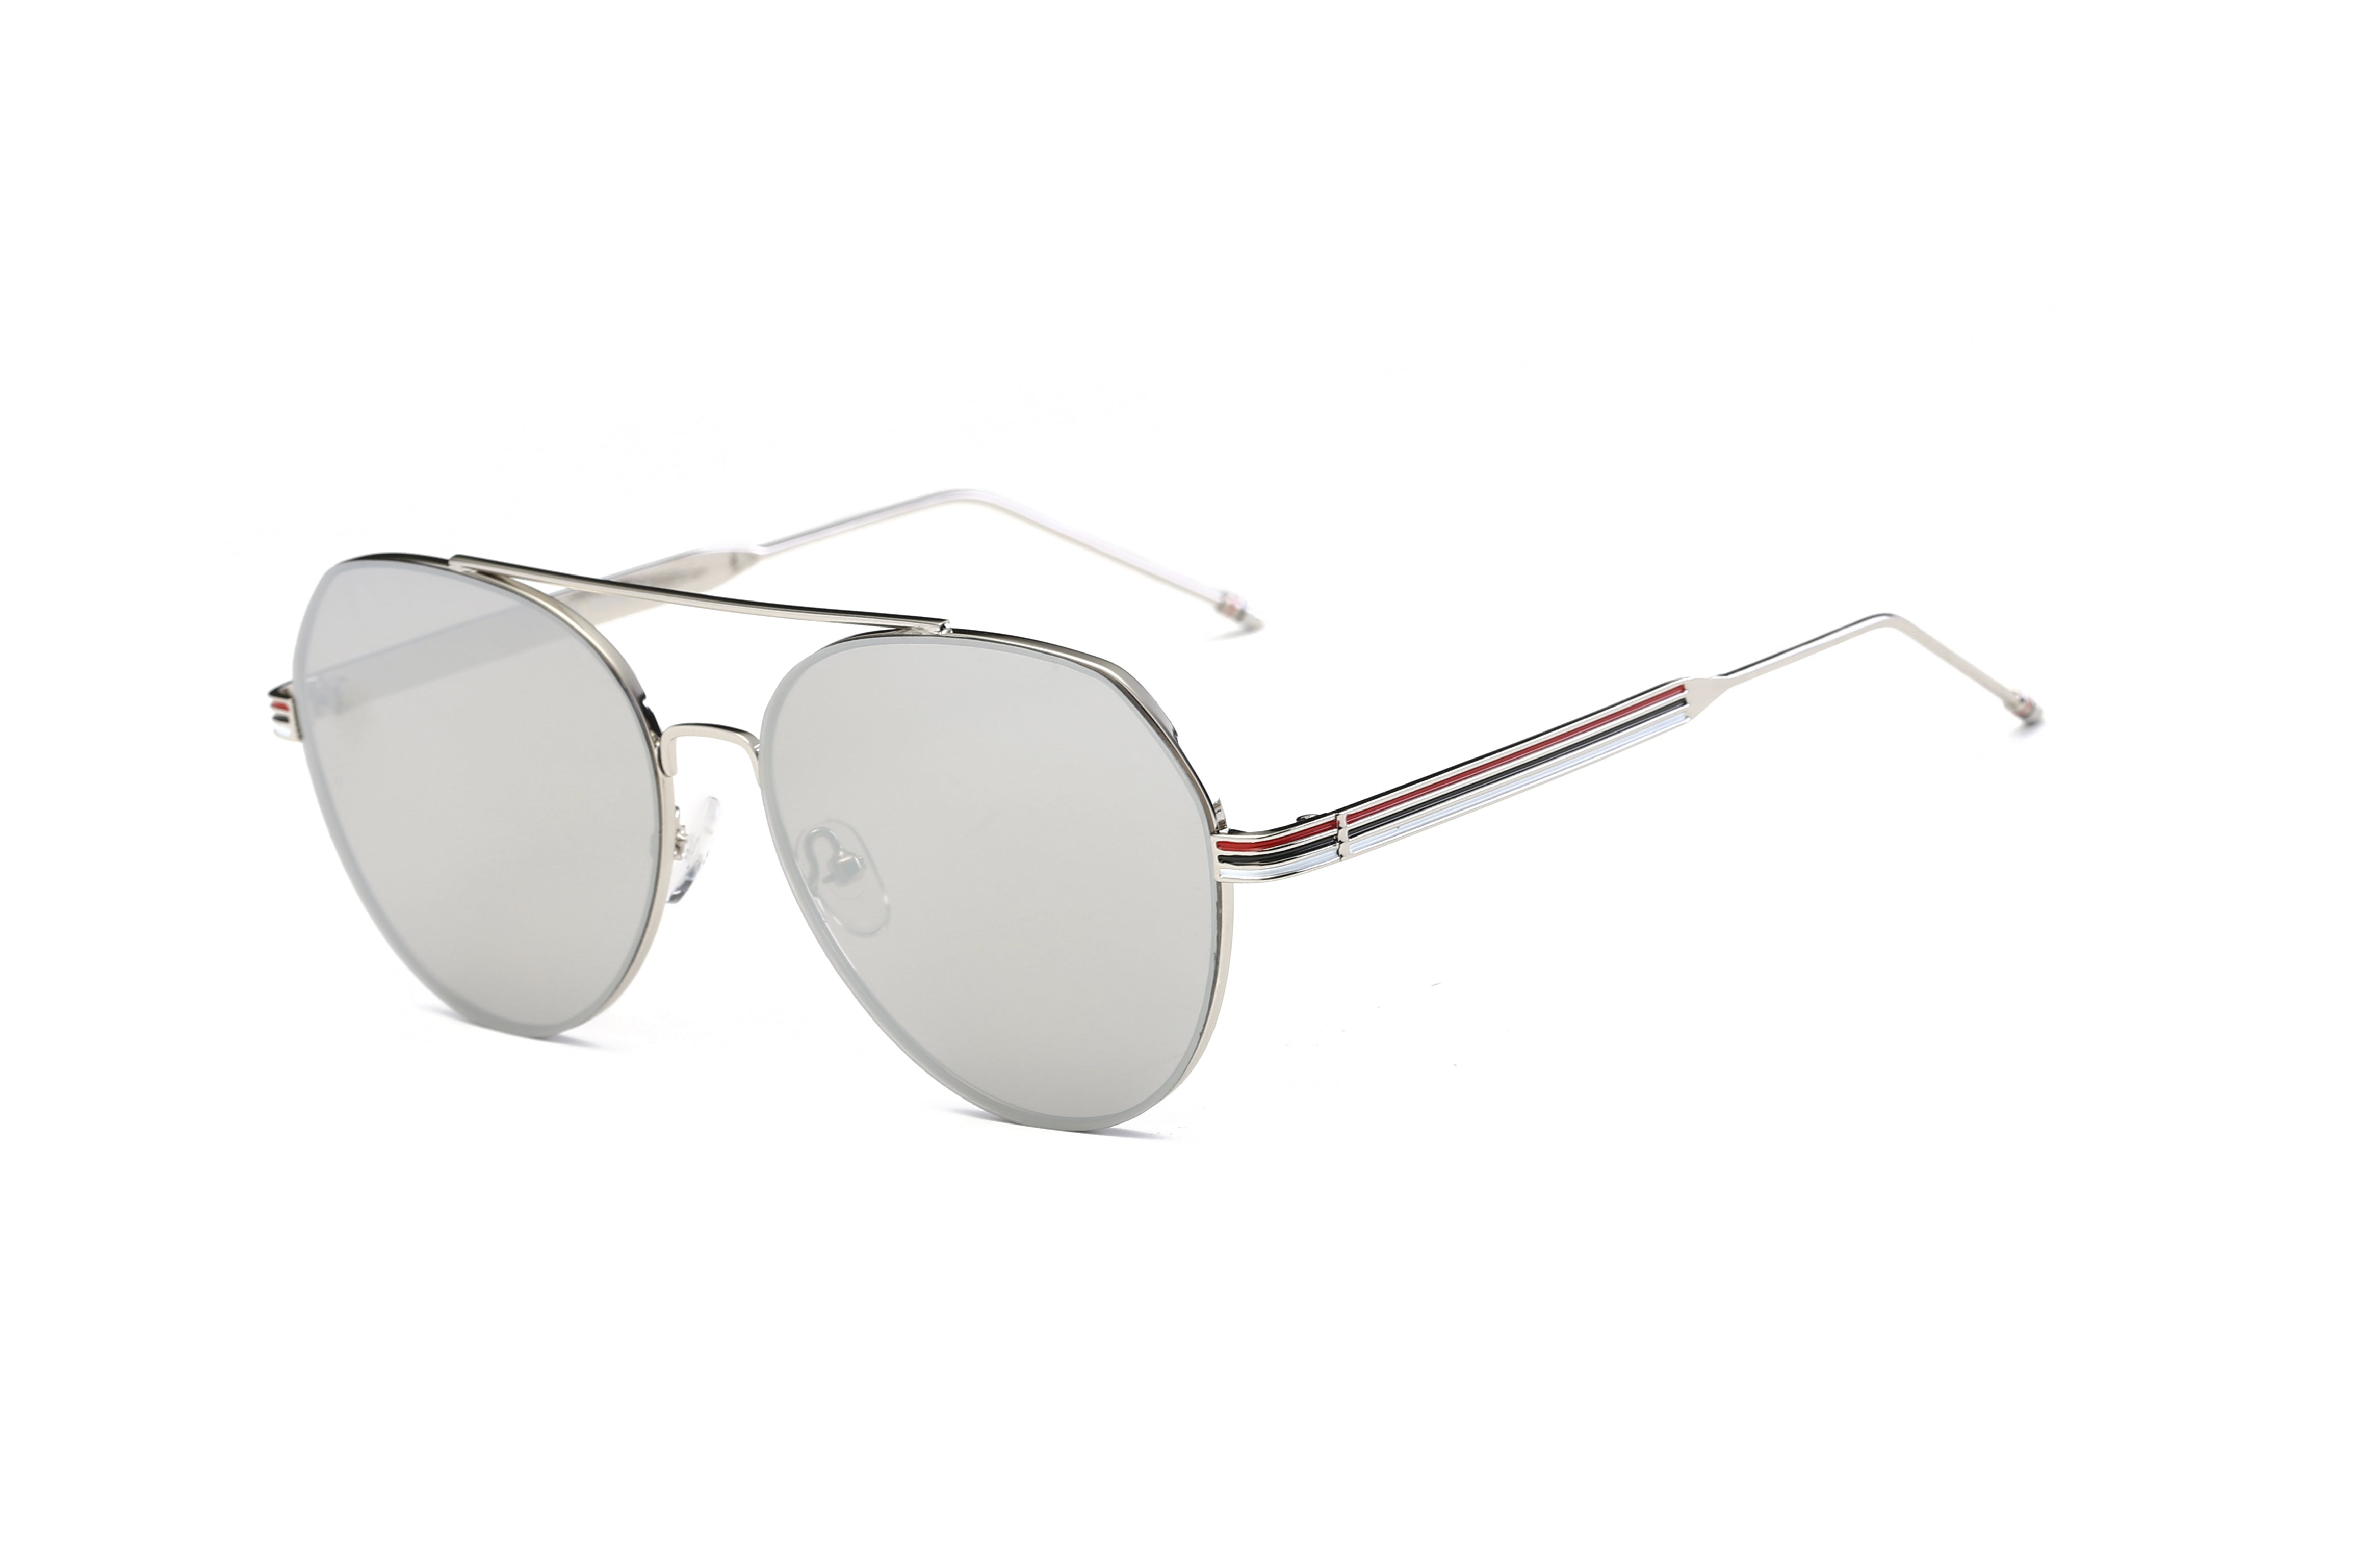 Classic Mirrored Aviator Fashion Sunglasses for Men and Women - Grey